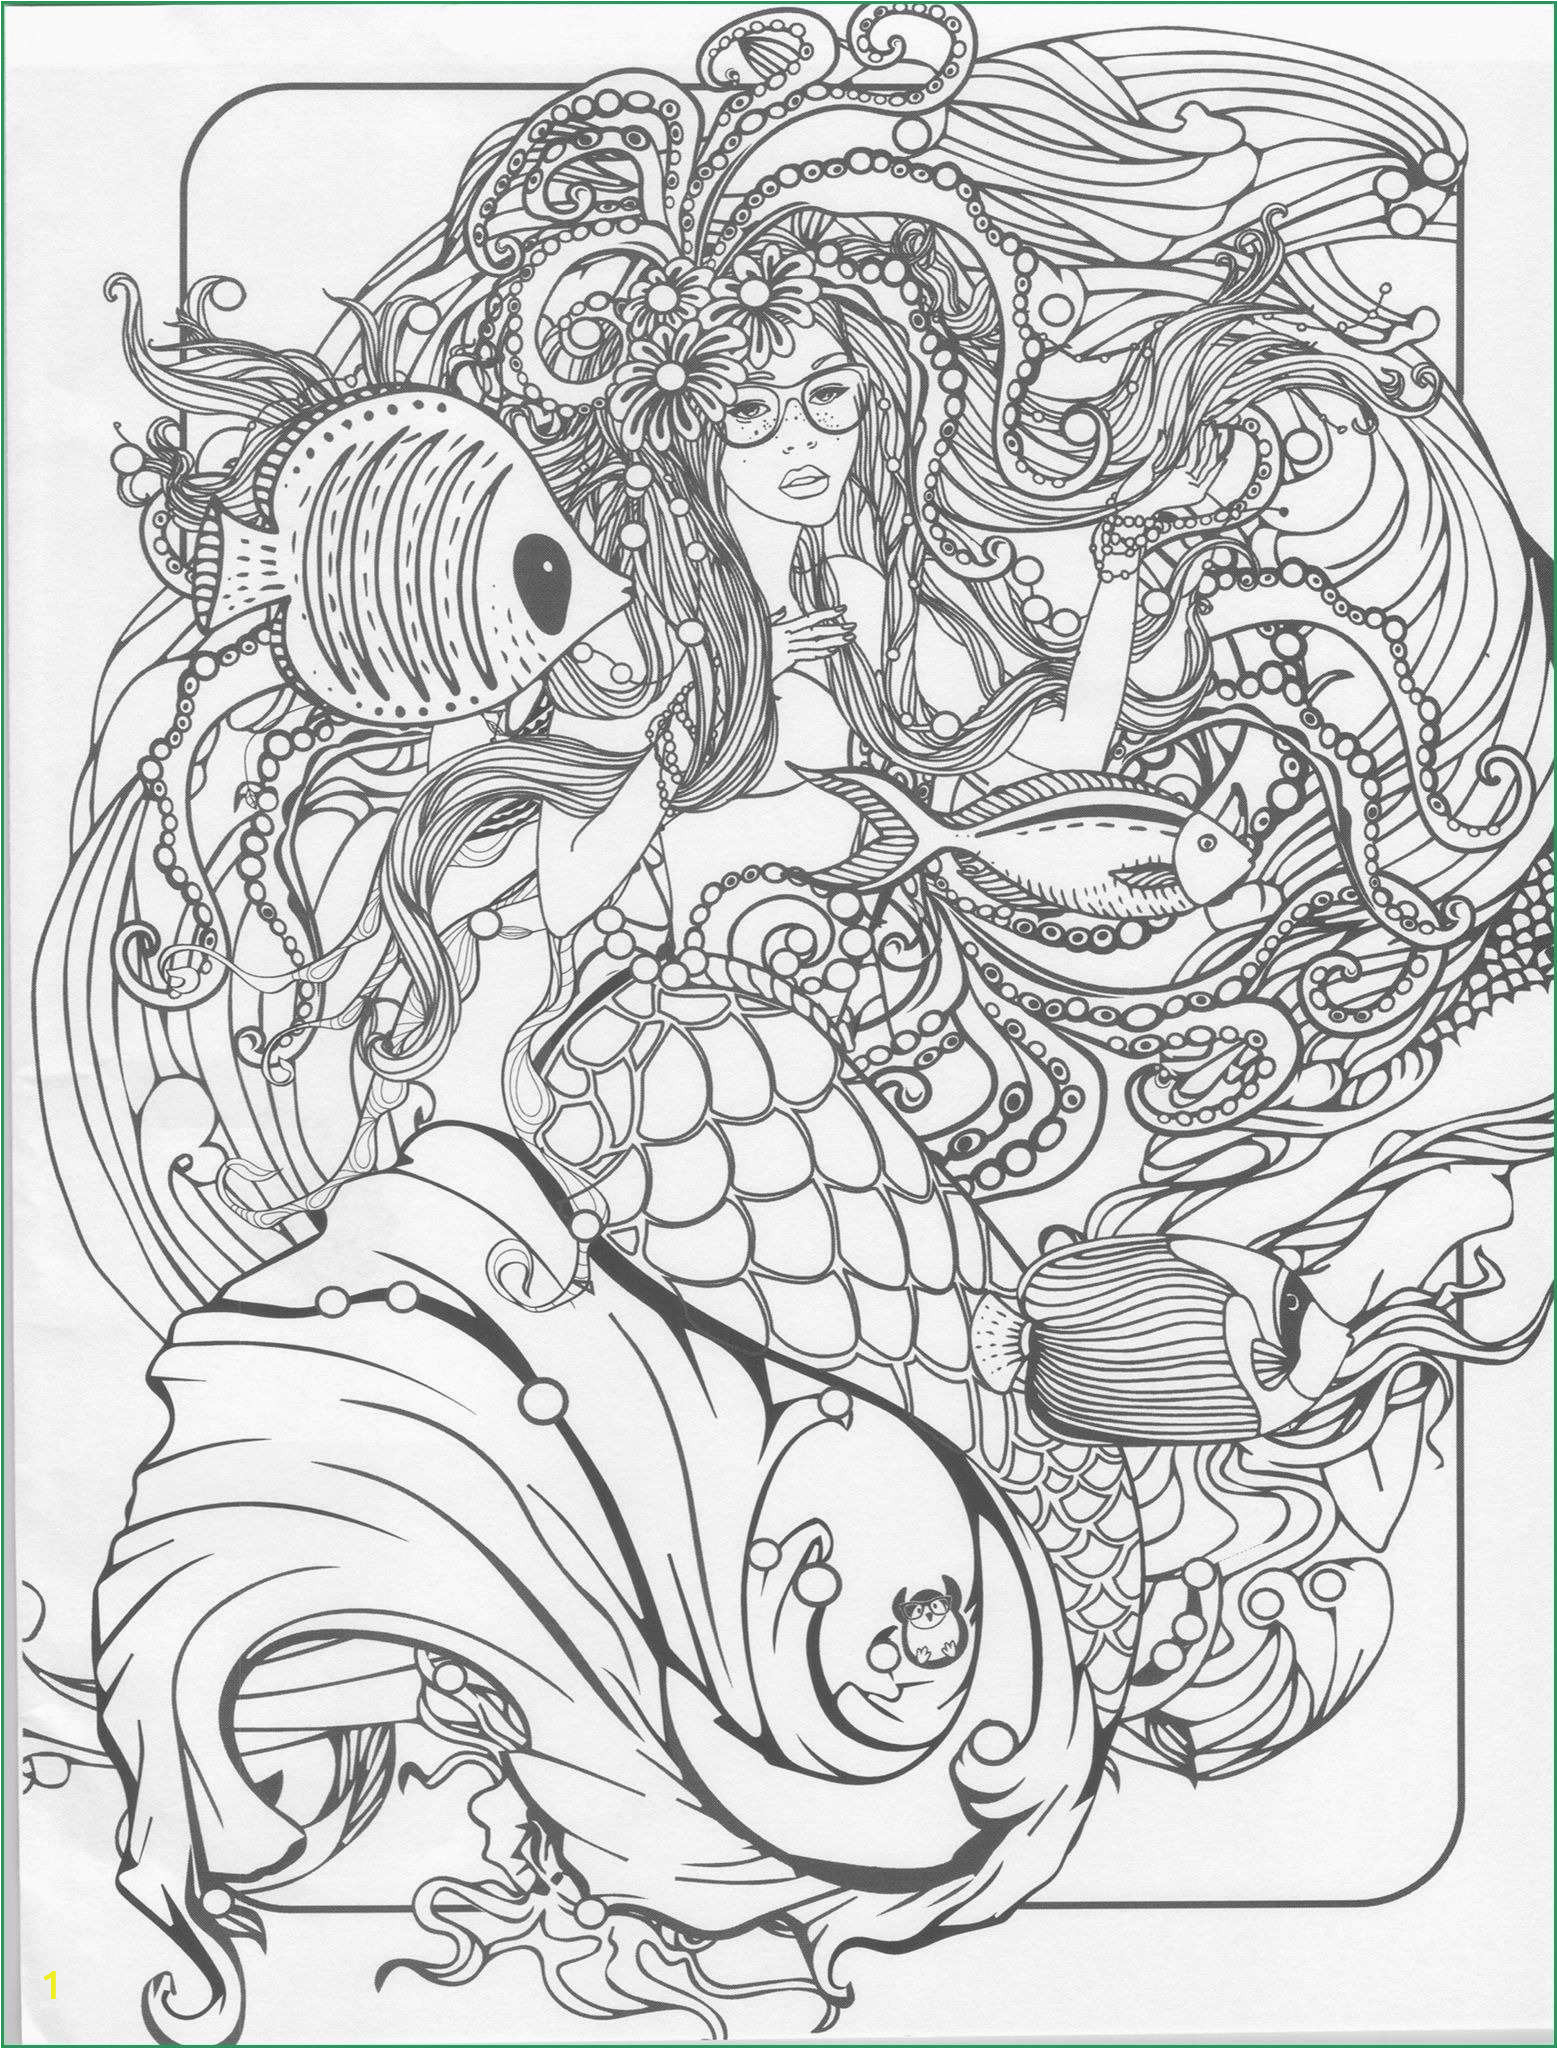 splendi mermaid coloringok pages photo ideas printable animals free flowers mermaid coloring pages for adults